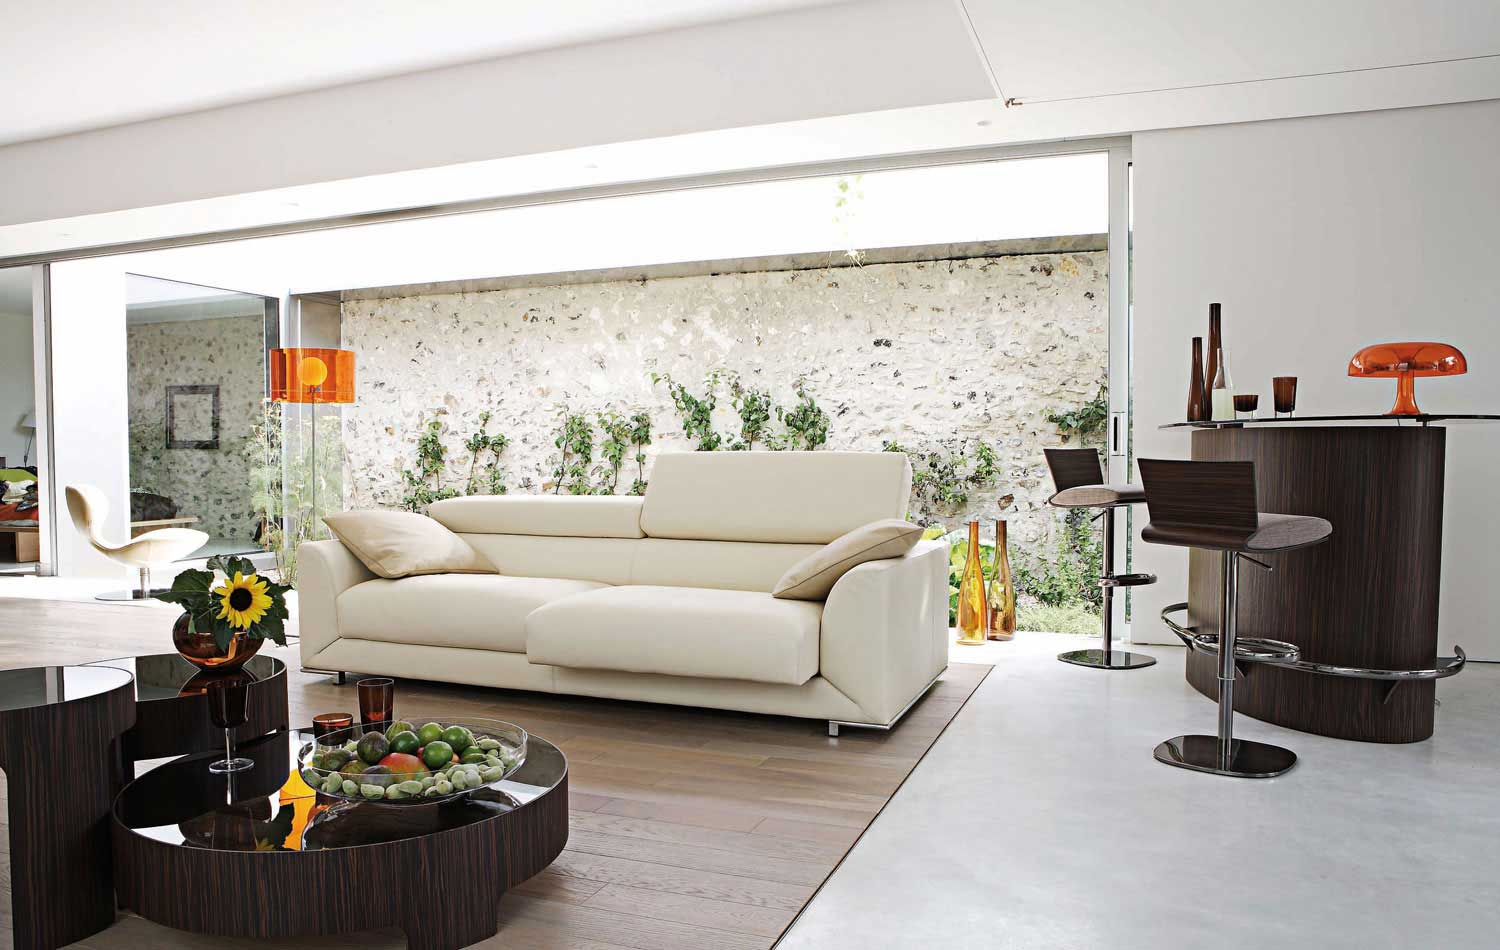 Couchtisch Design Holz Living Room Inspiration: 120 Modern Sofas By Roche Bobois